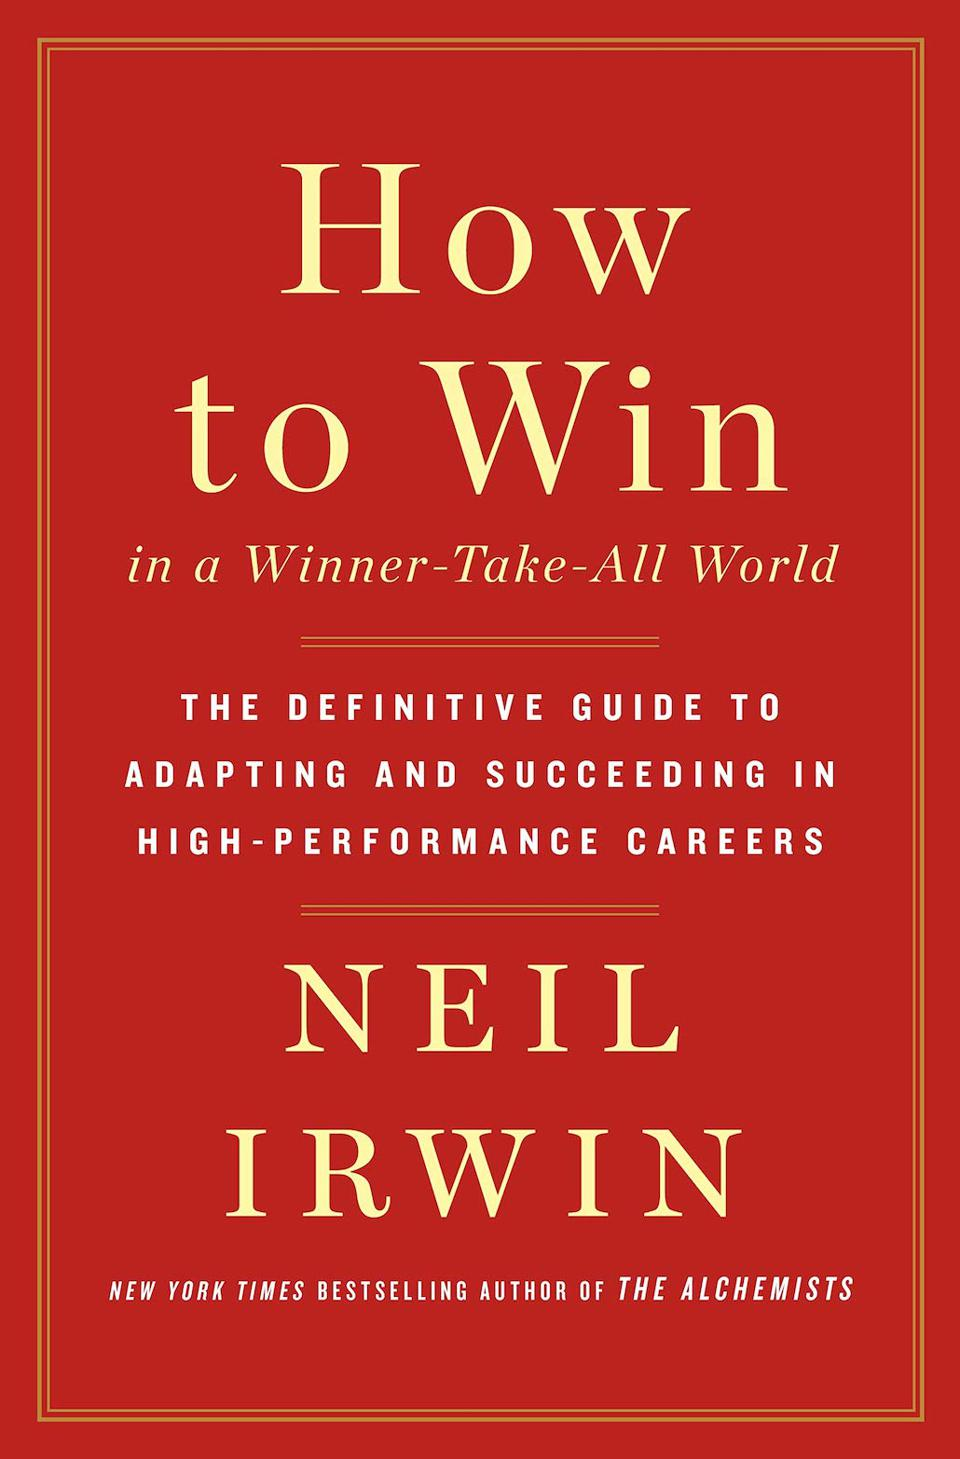 How to Win in a Winner-Take-All World: The Definitive Guide to Adapting and Succeeding in High-Performance Careers by Neil Irwin